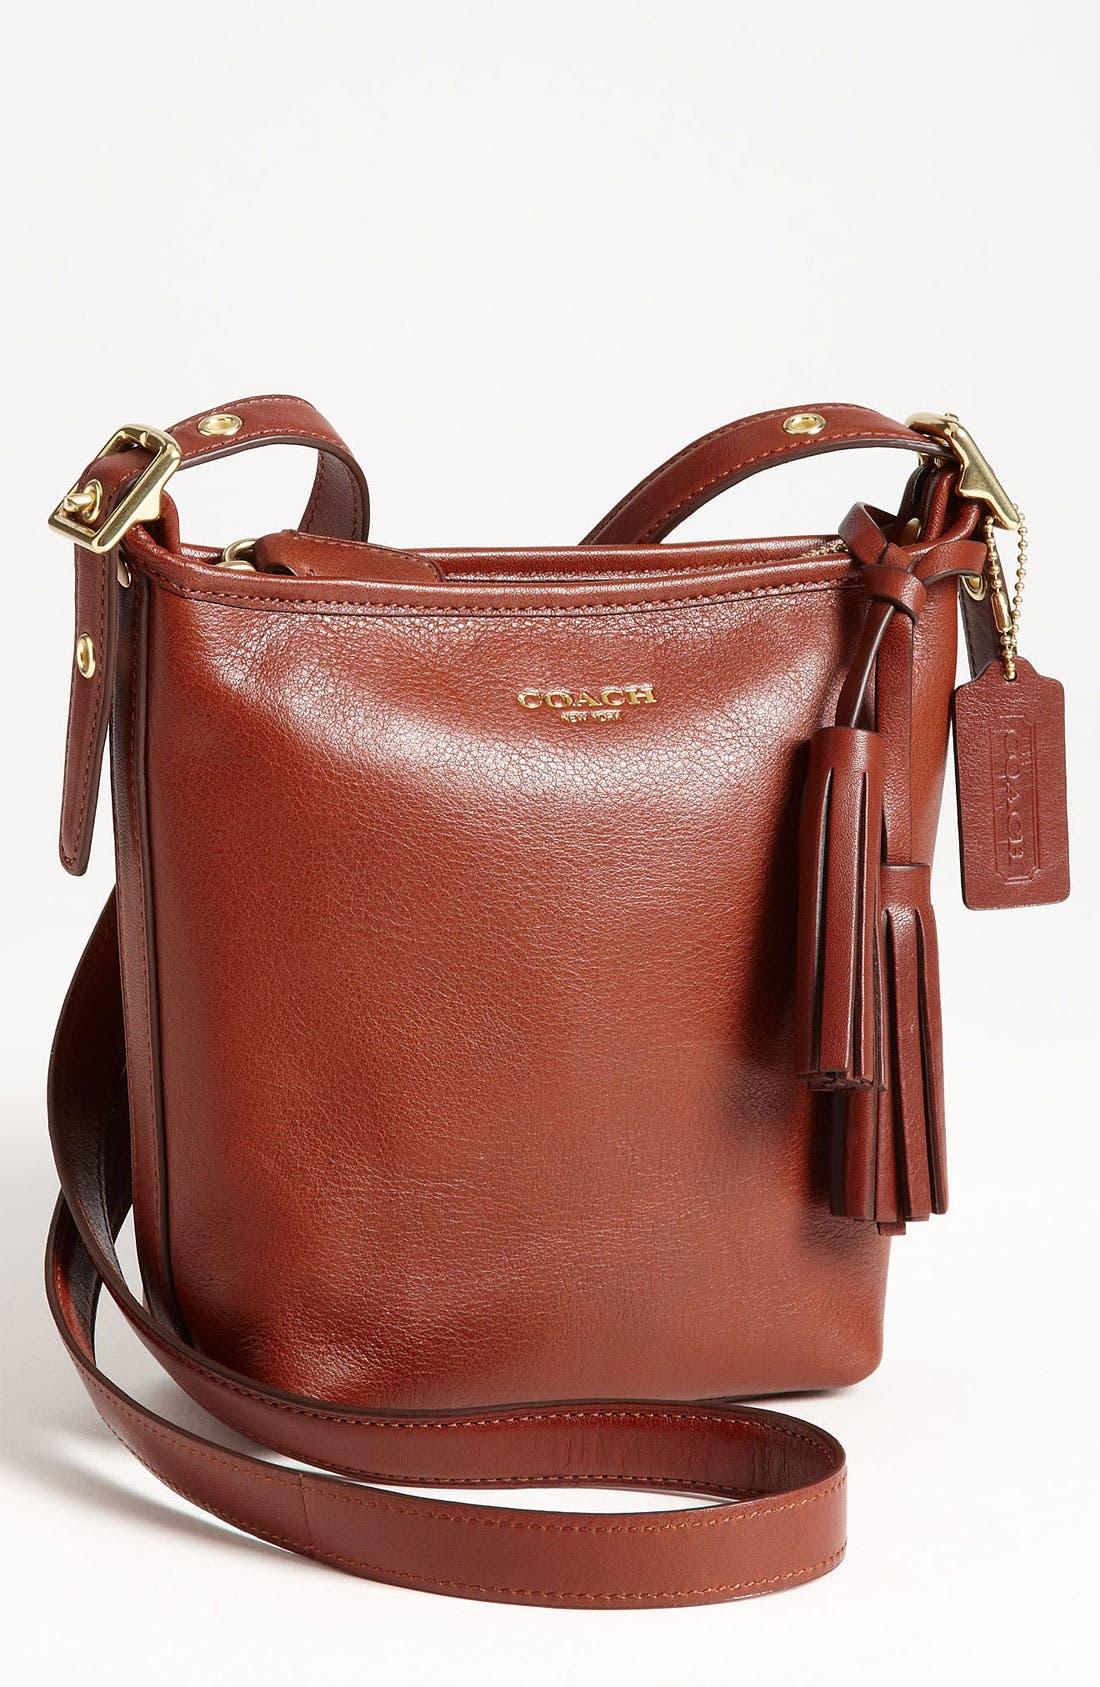 Alternate Image 1 Selected - COACH 'Legacy - Mini' Leather Shoulder Bag